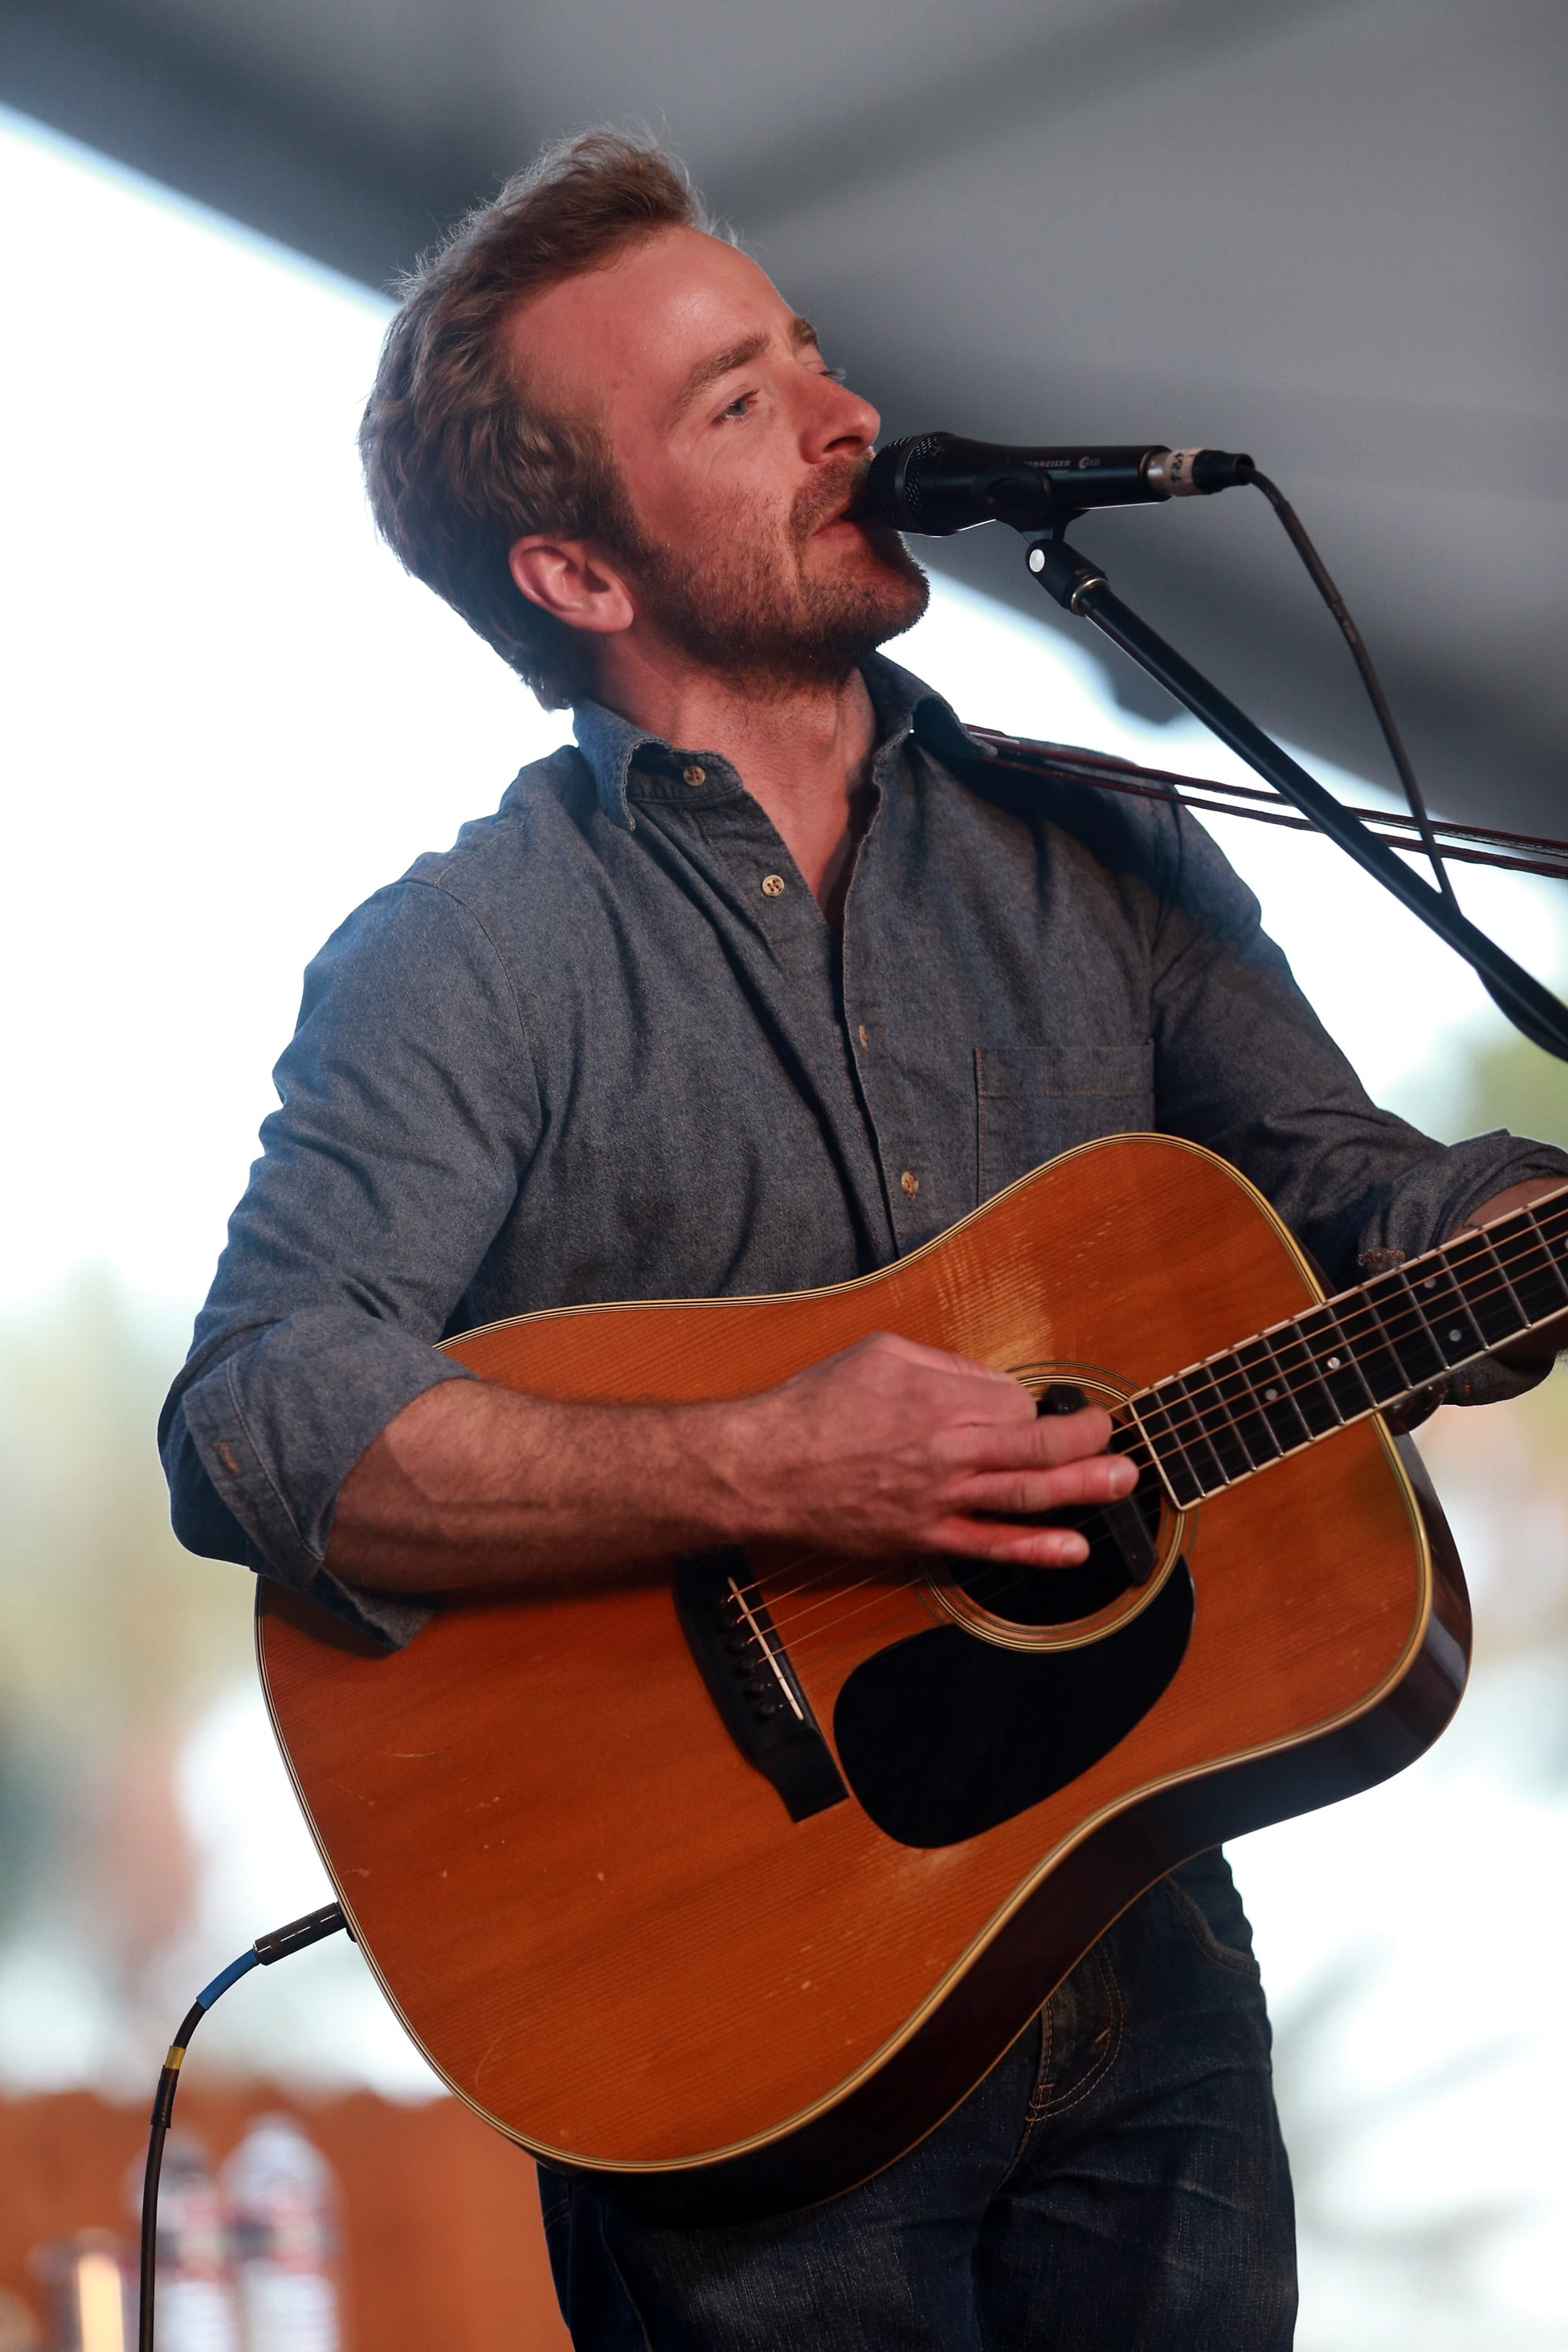 Because I don't know who Dave Simonett of Trampled by Turtles is, but he's really hot.